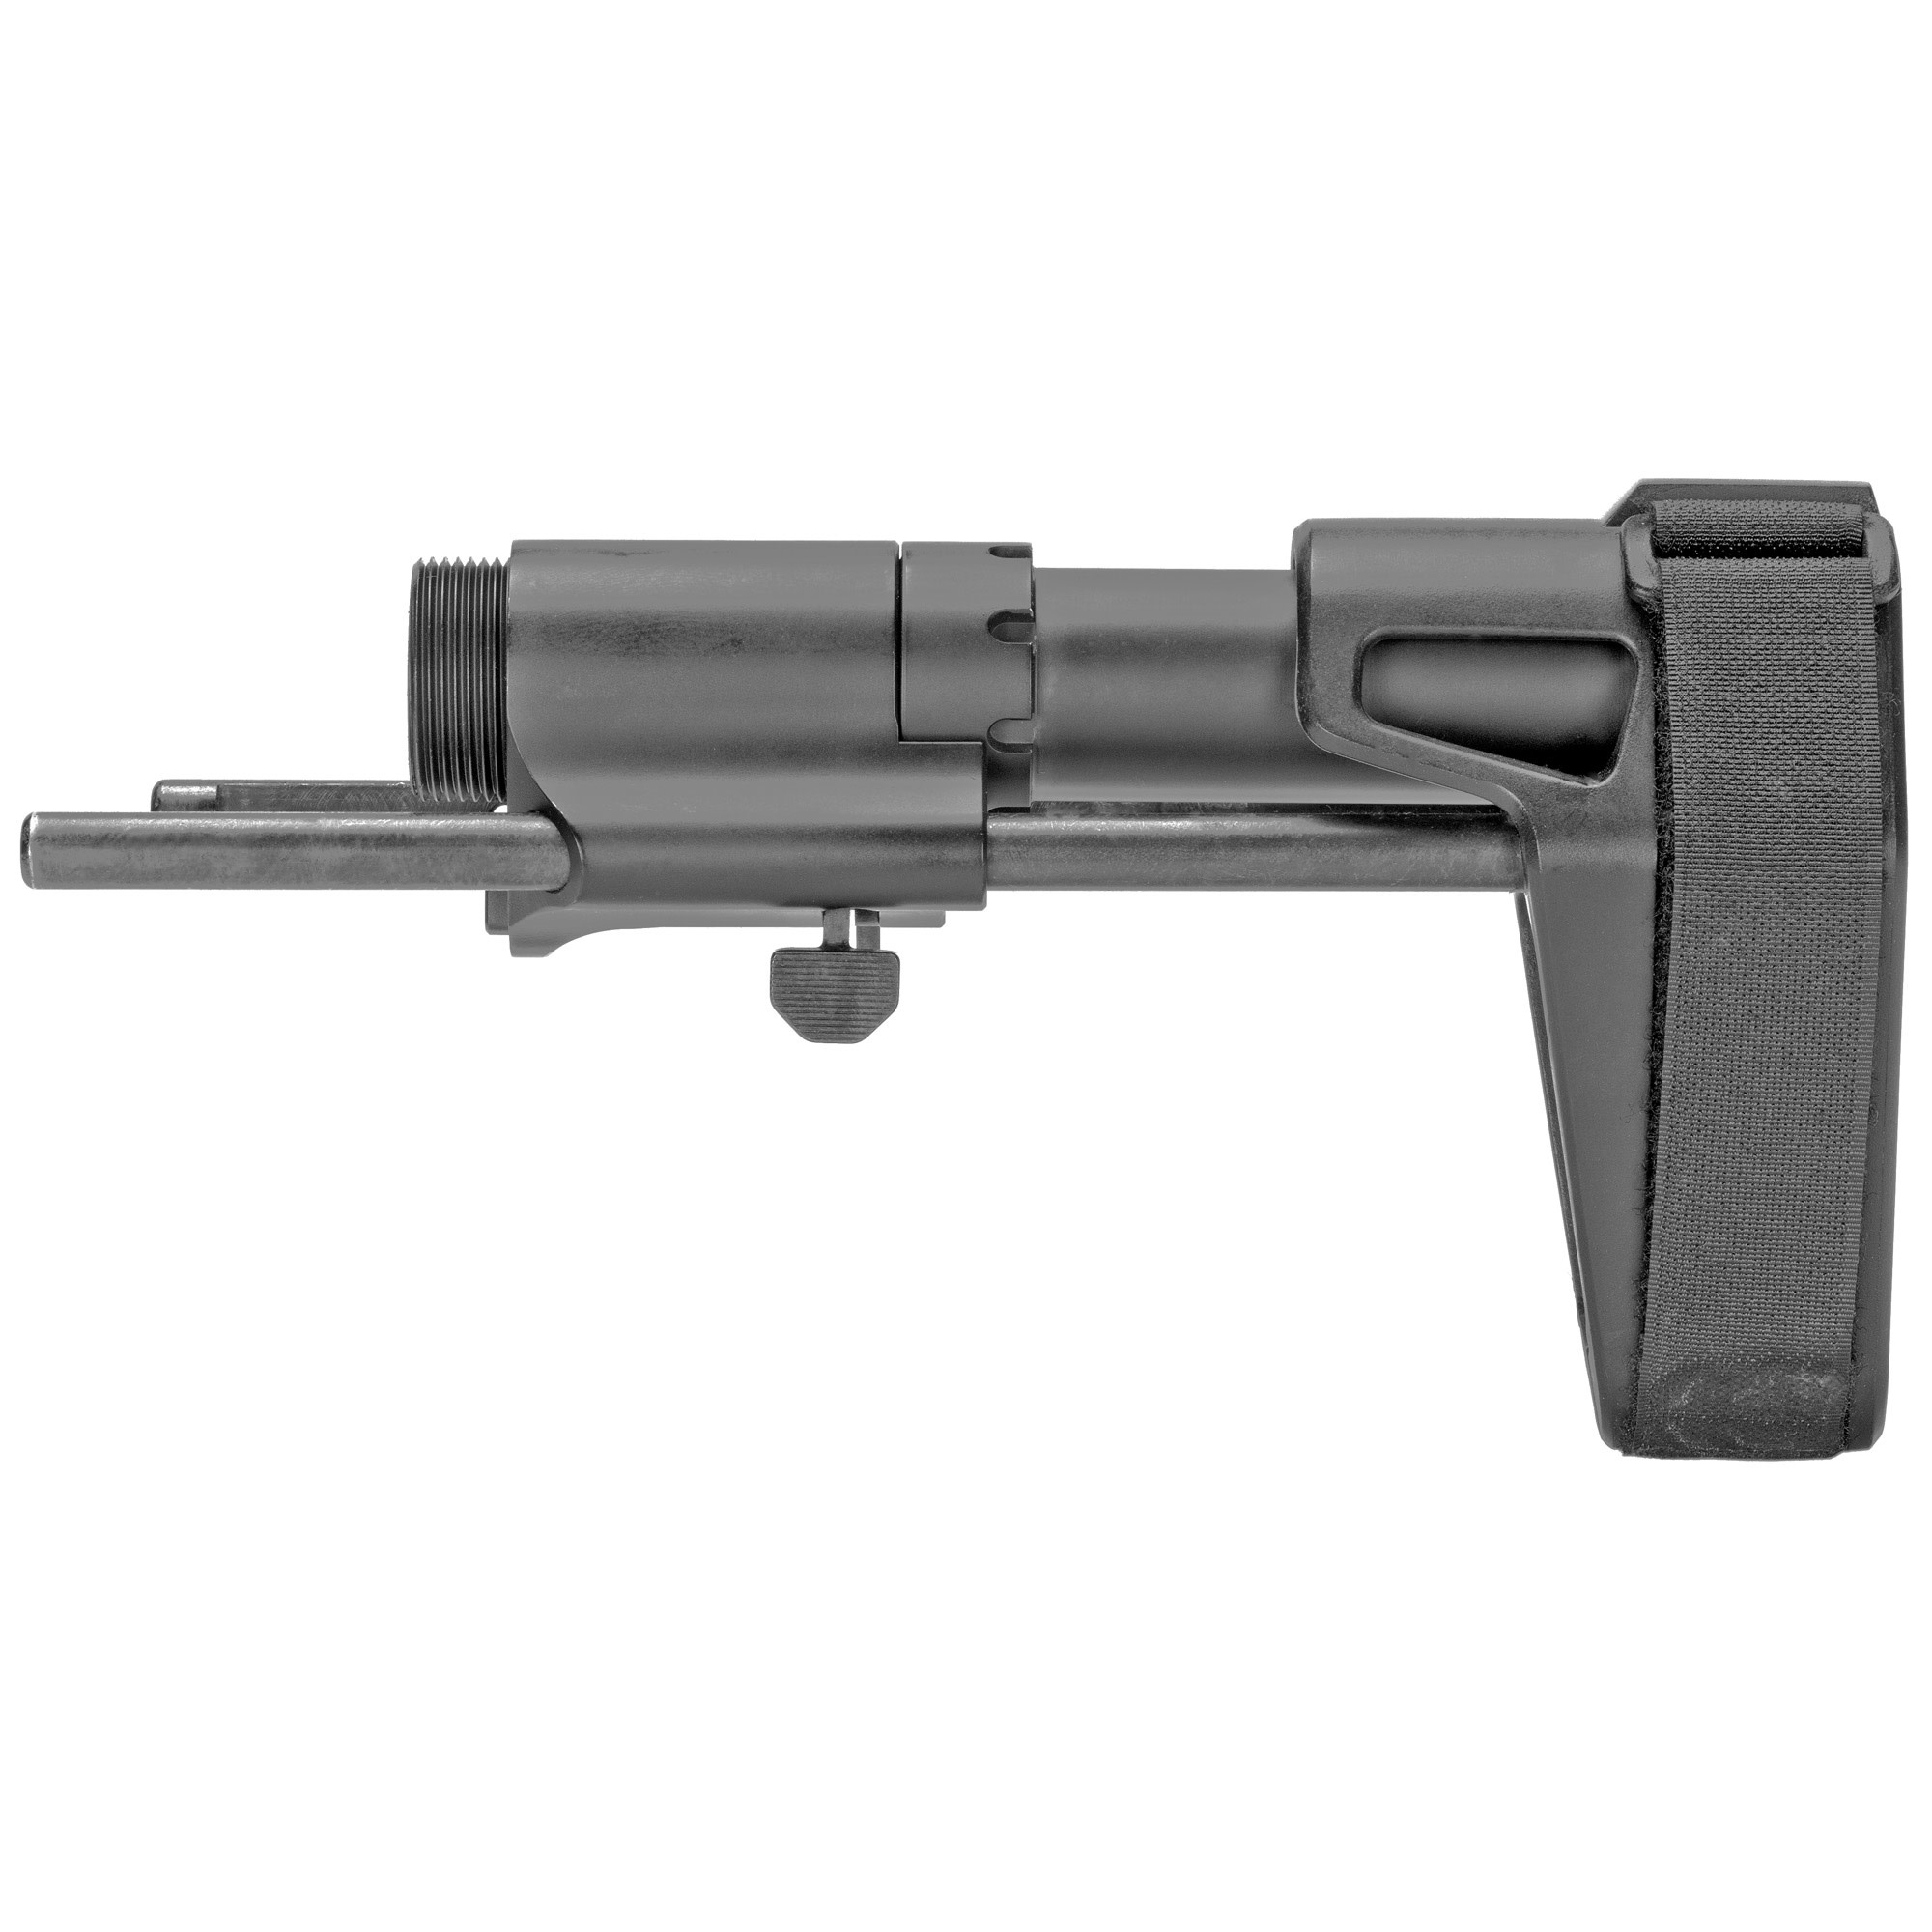 SB Tactical, SB PDW Stabilizing Brace, Black, Fits AR15, Uses Standard BCG and Buffer